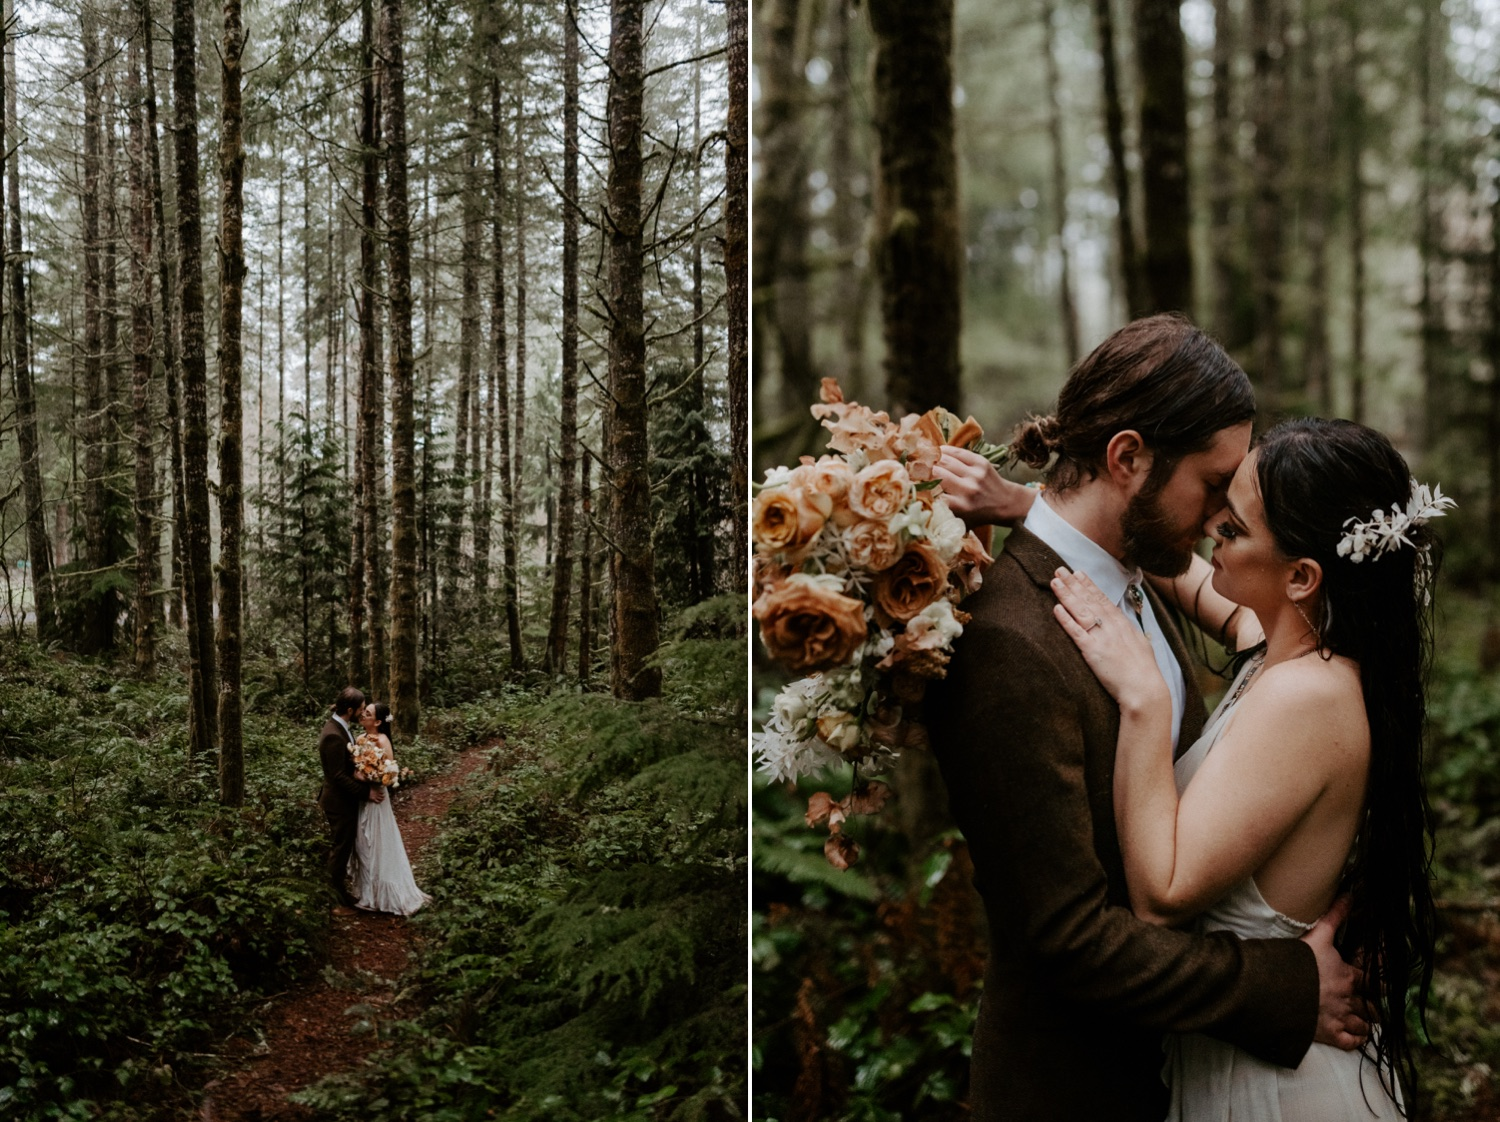 The Woodlands House Sandy Oregon Elopement Portland Elopement Photographer PNW Adventurous Elopement Anais Possamai Photography 039